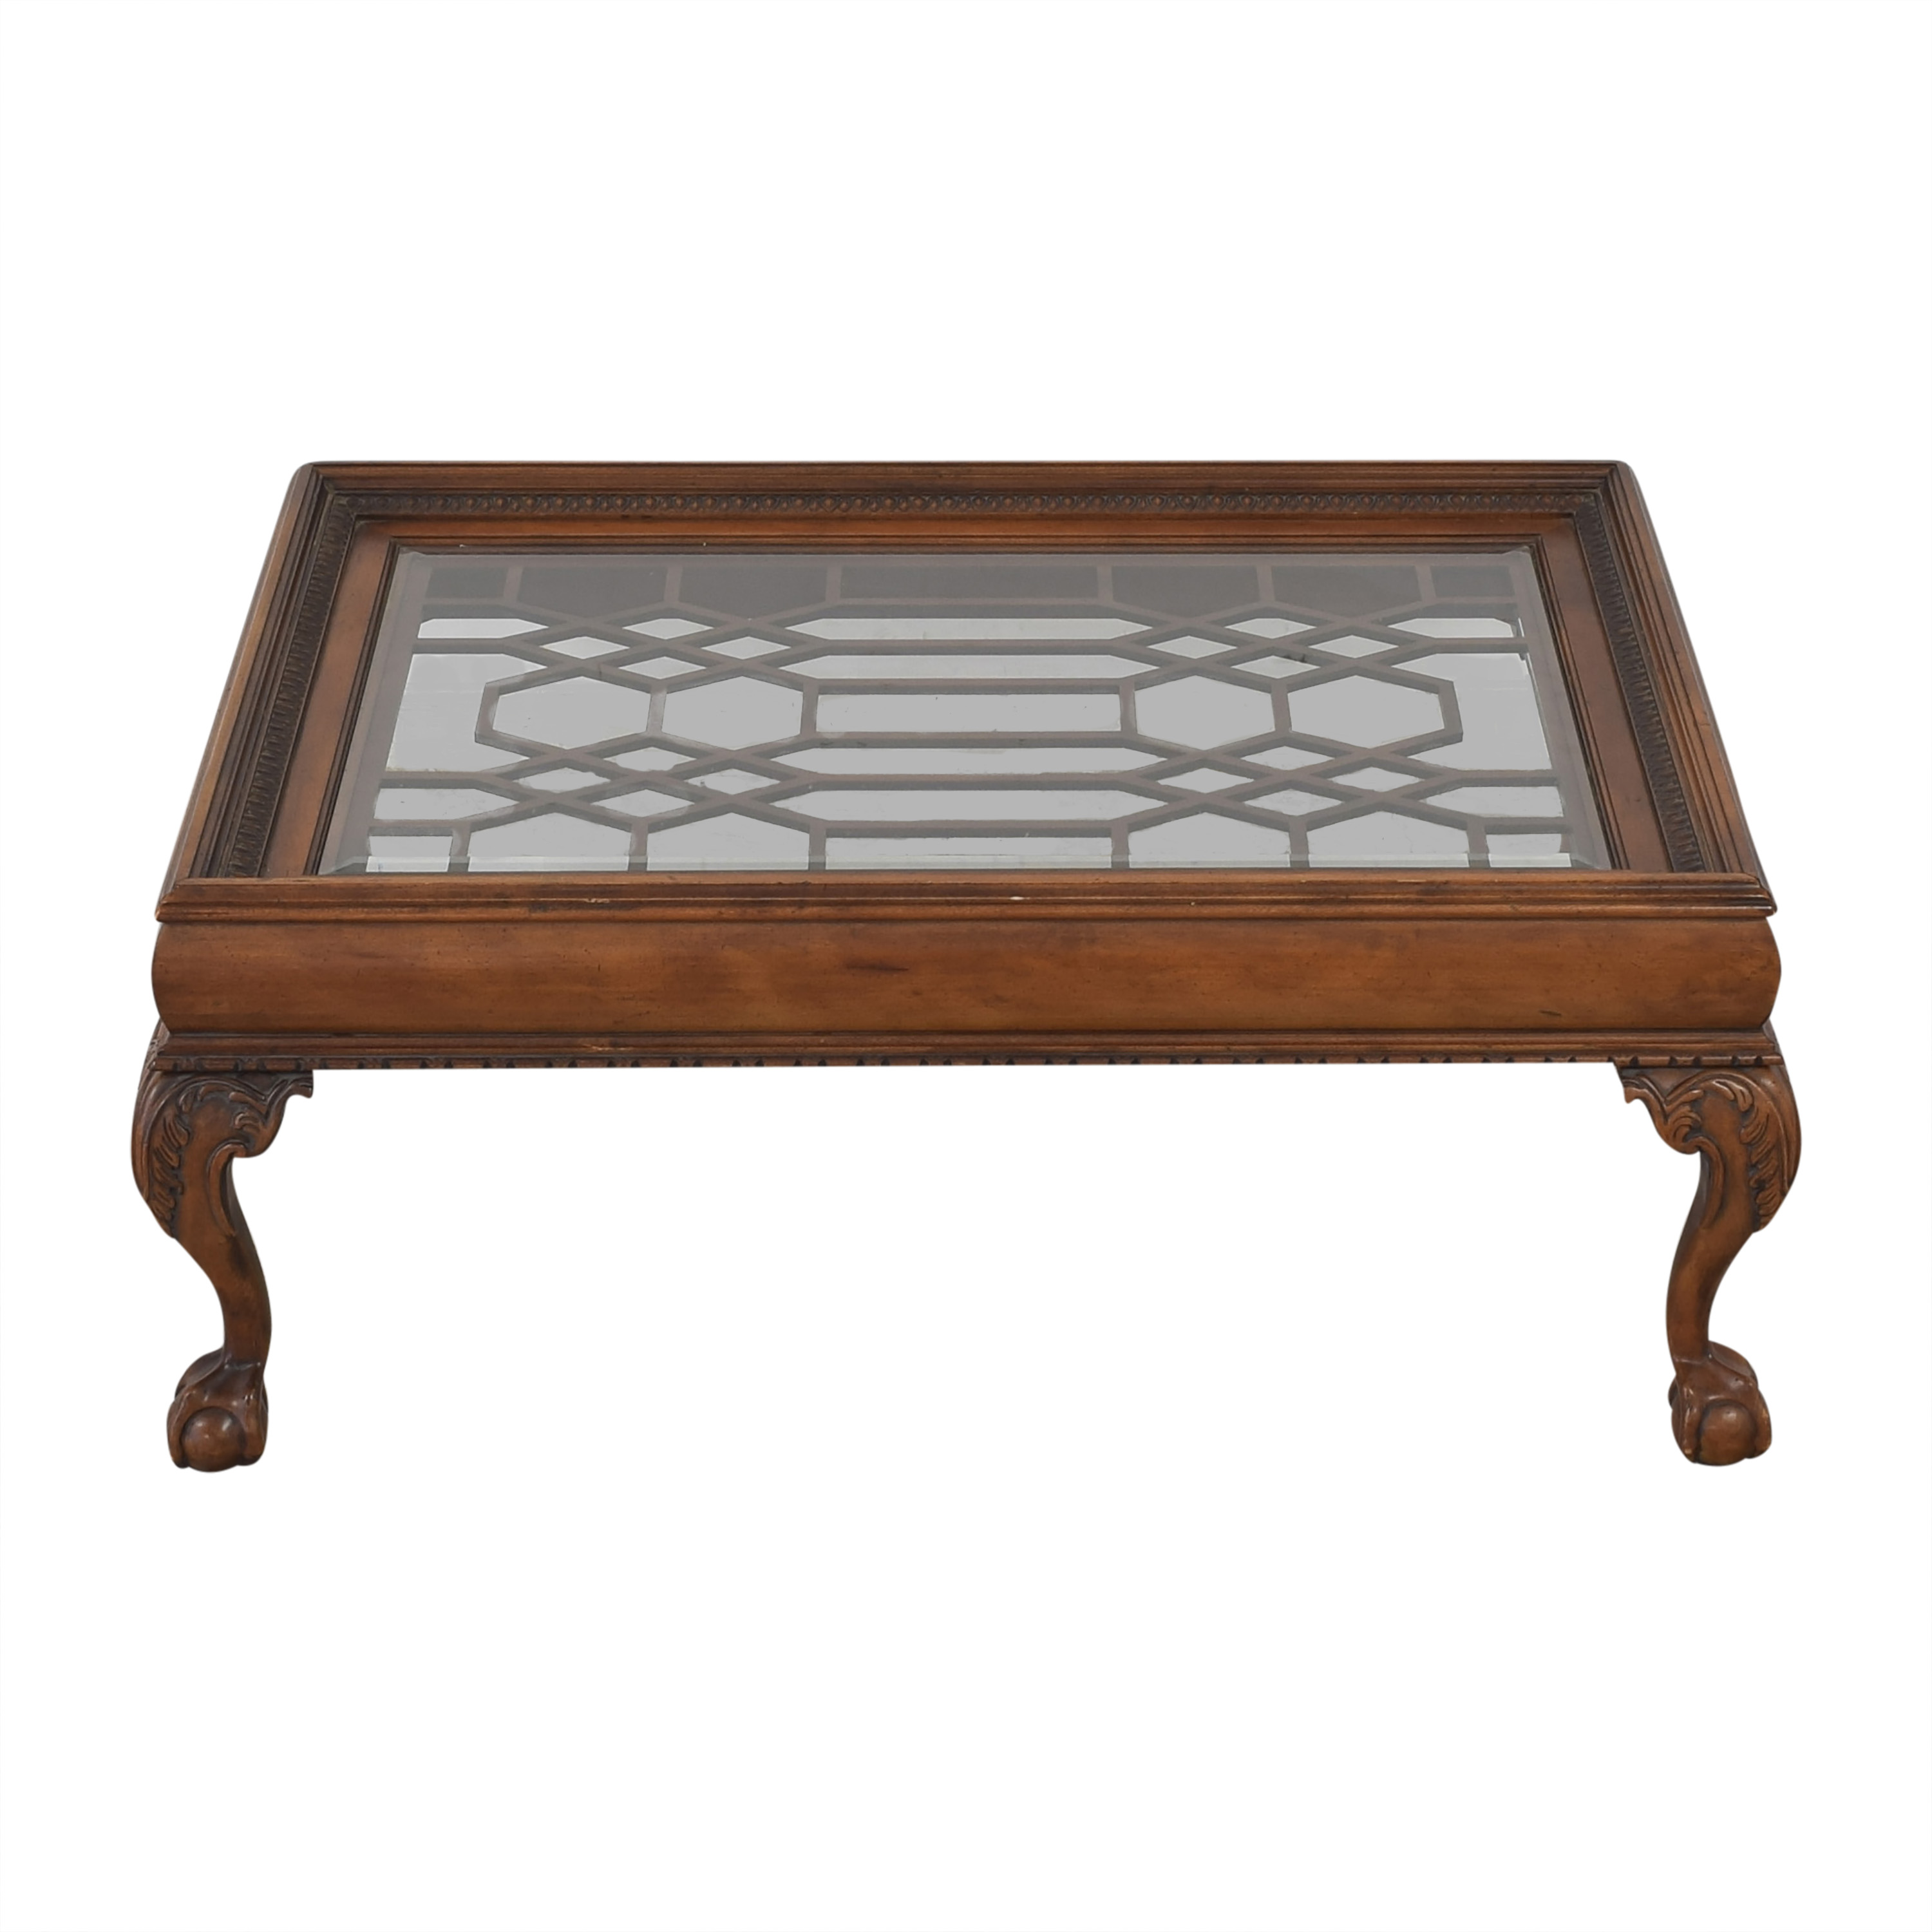 buy Century Furniture Century Furniture Ball and Claw Coffee Table online